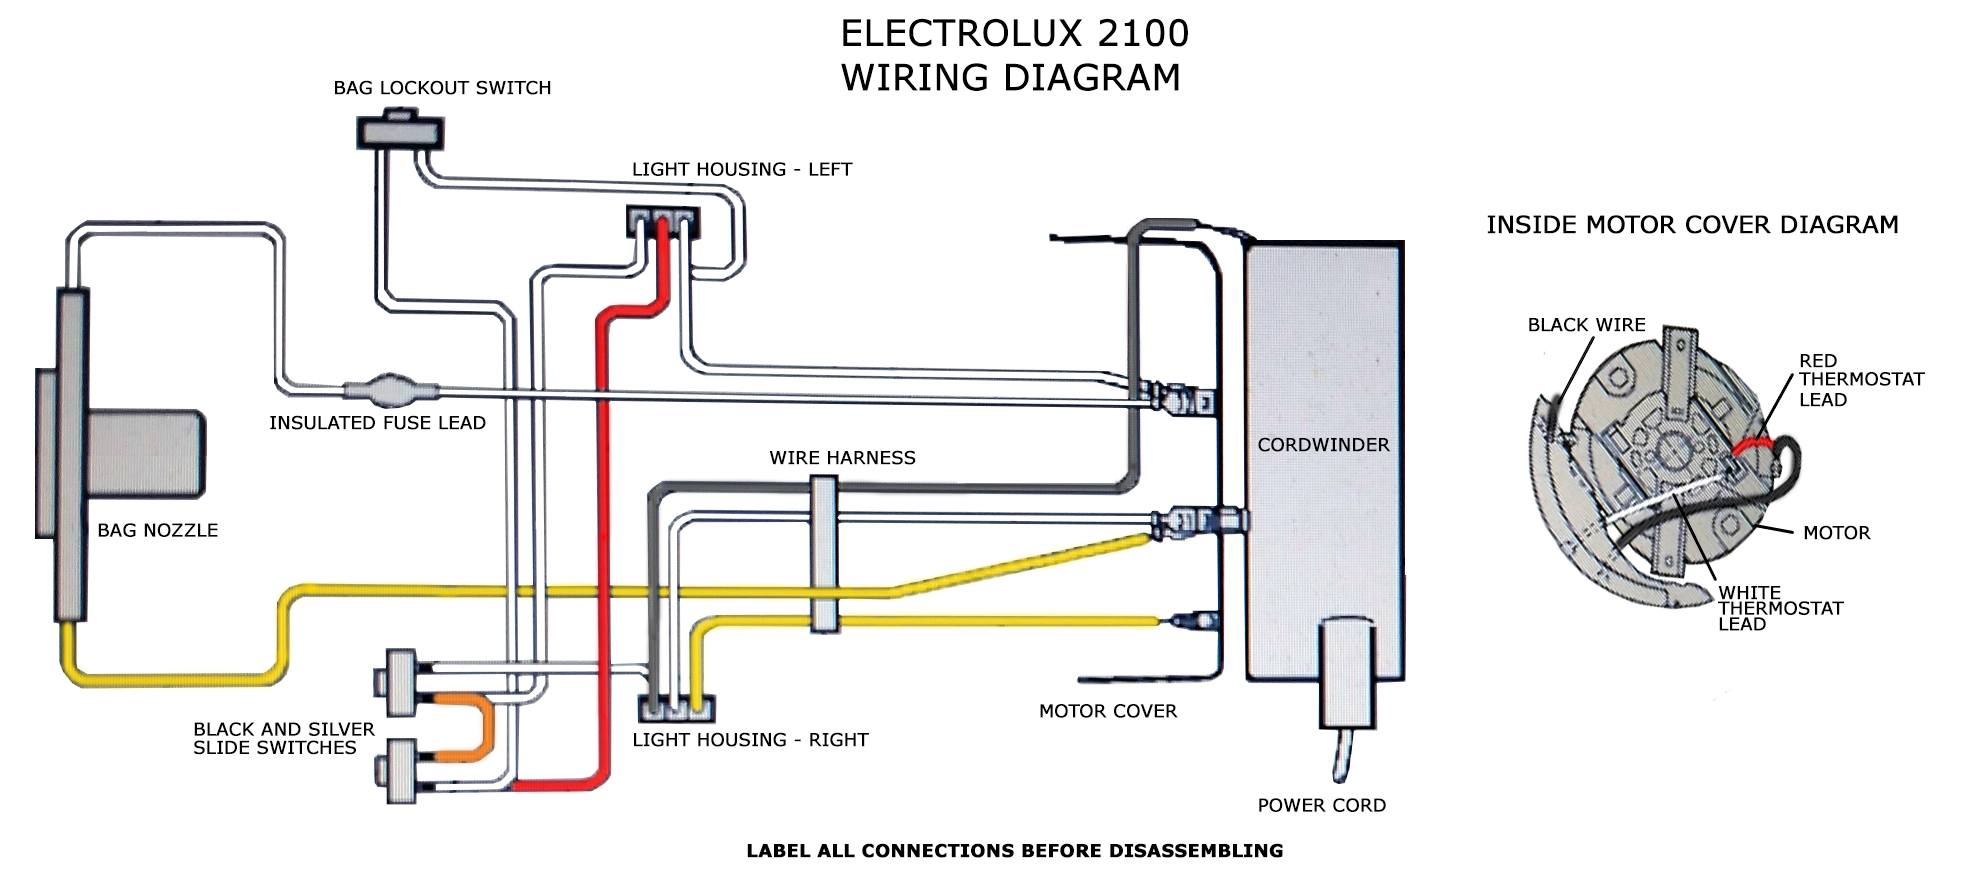 2100 wiring diagram electrolux 2100 wiring diagram vacuum cleaner motor wiring diagram at gsmx.co